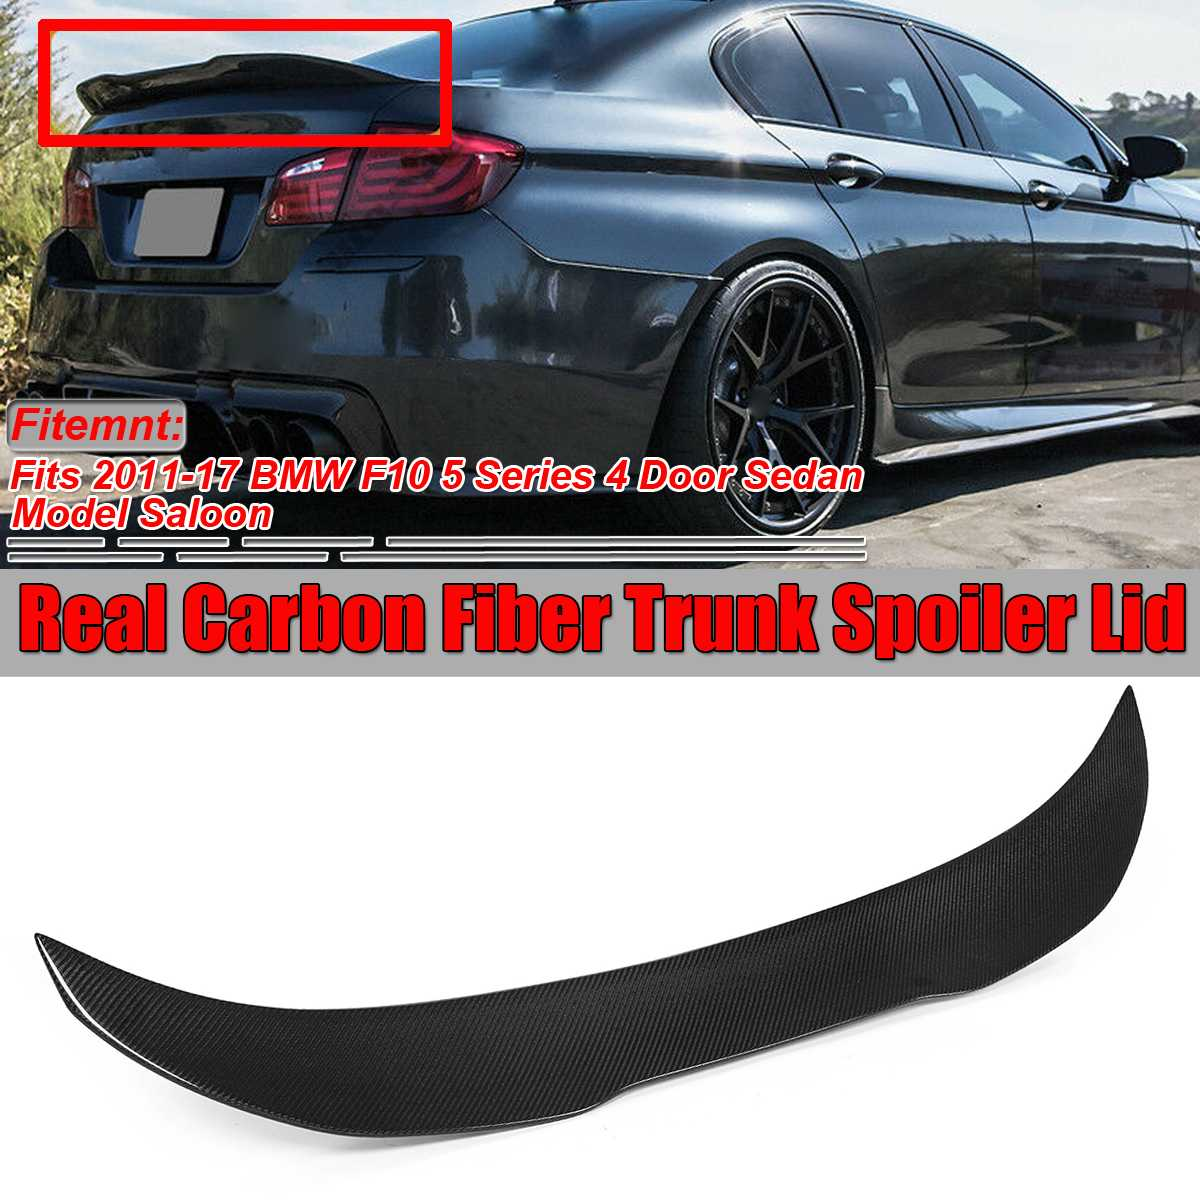 New PSM Style Real Carbon Fiber F10 Car Rear Trunk Boot Lip Spoiler Wing Lid For BMW F10 5 Series 4 Dr Sedan 2011-2017